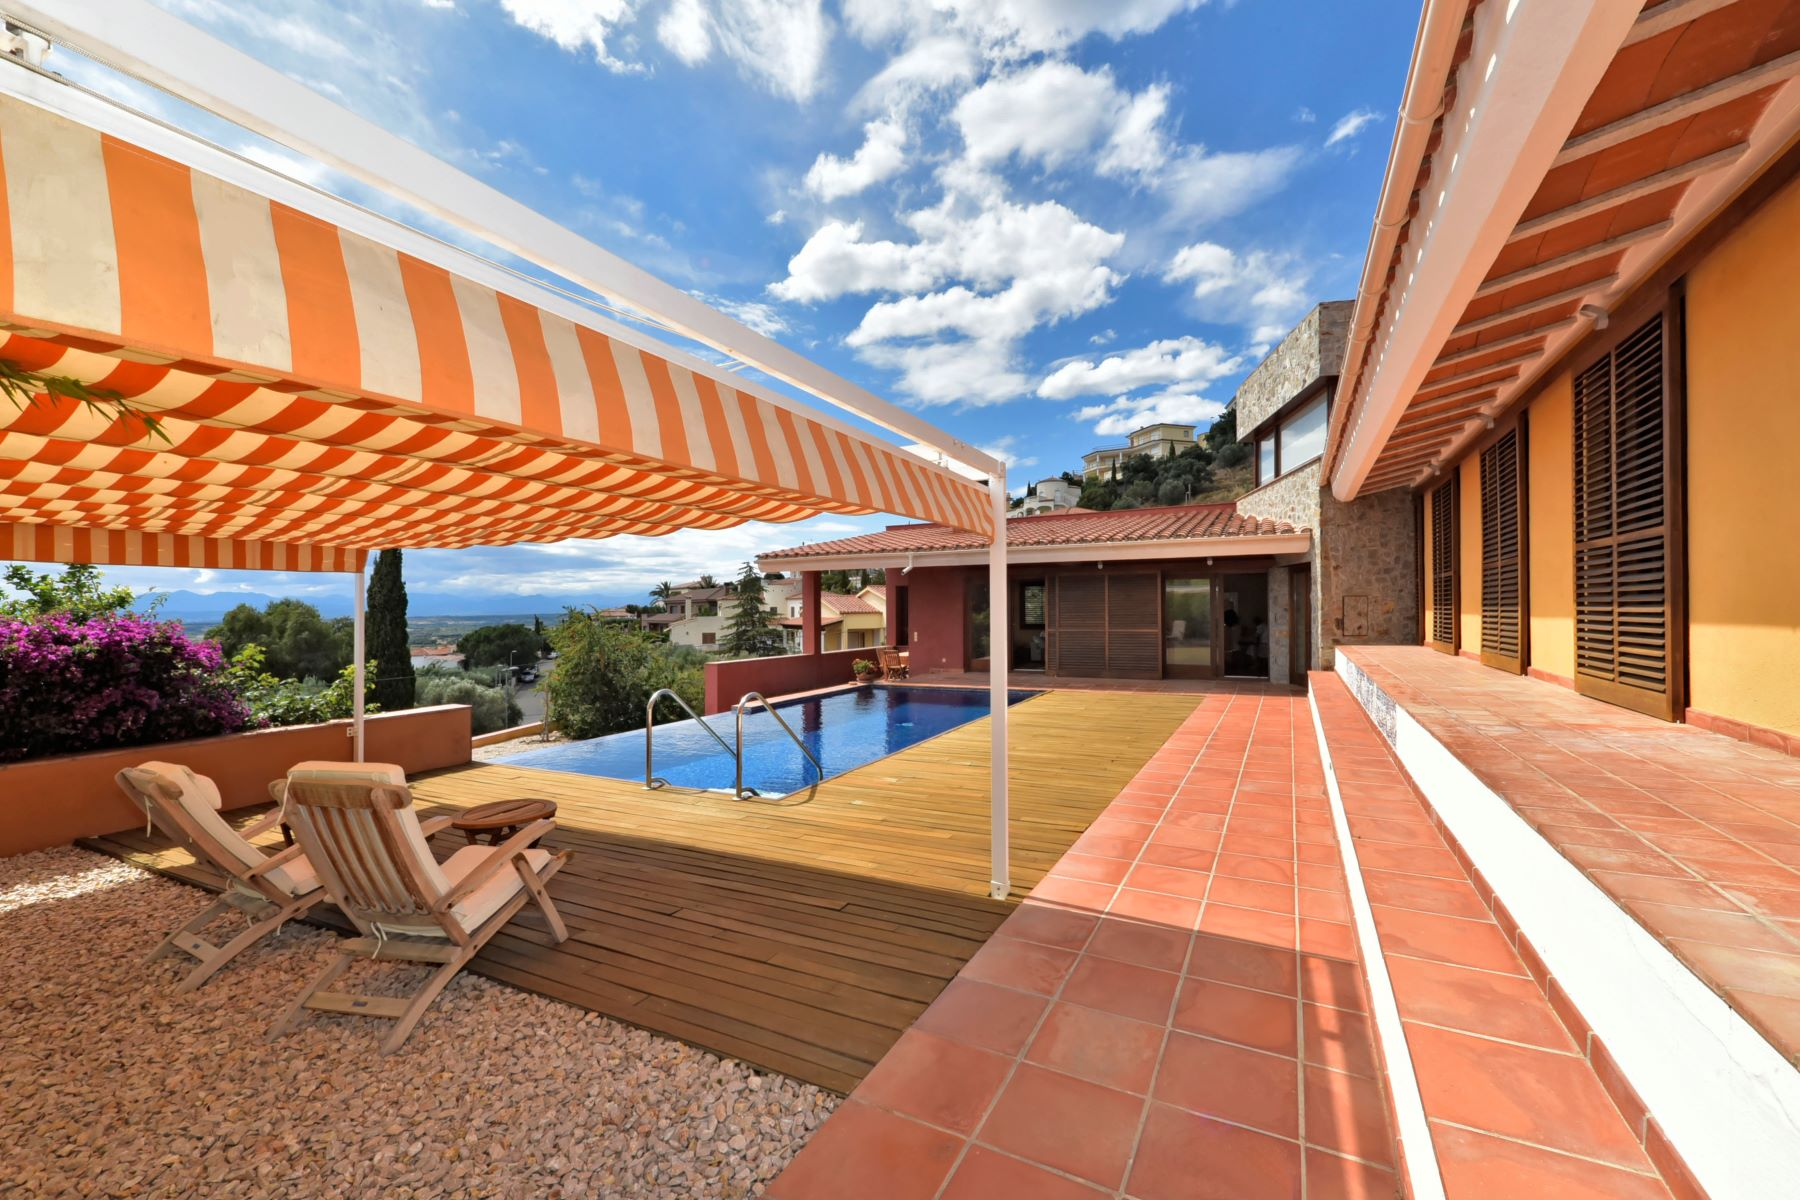 Single Family Home for Sale at Beautiful villa overlooking the bay of Rose Roses, Costa Brava, 17480 Spain